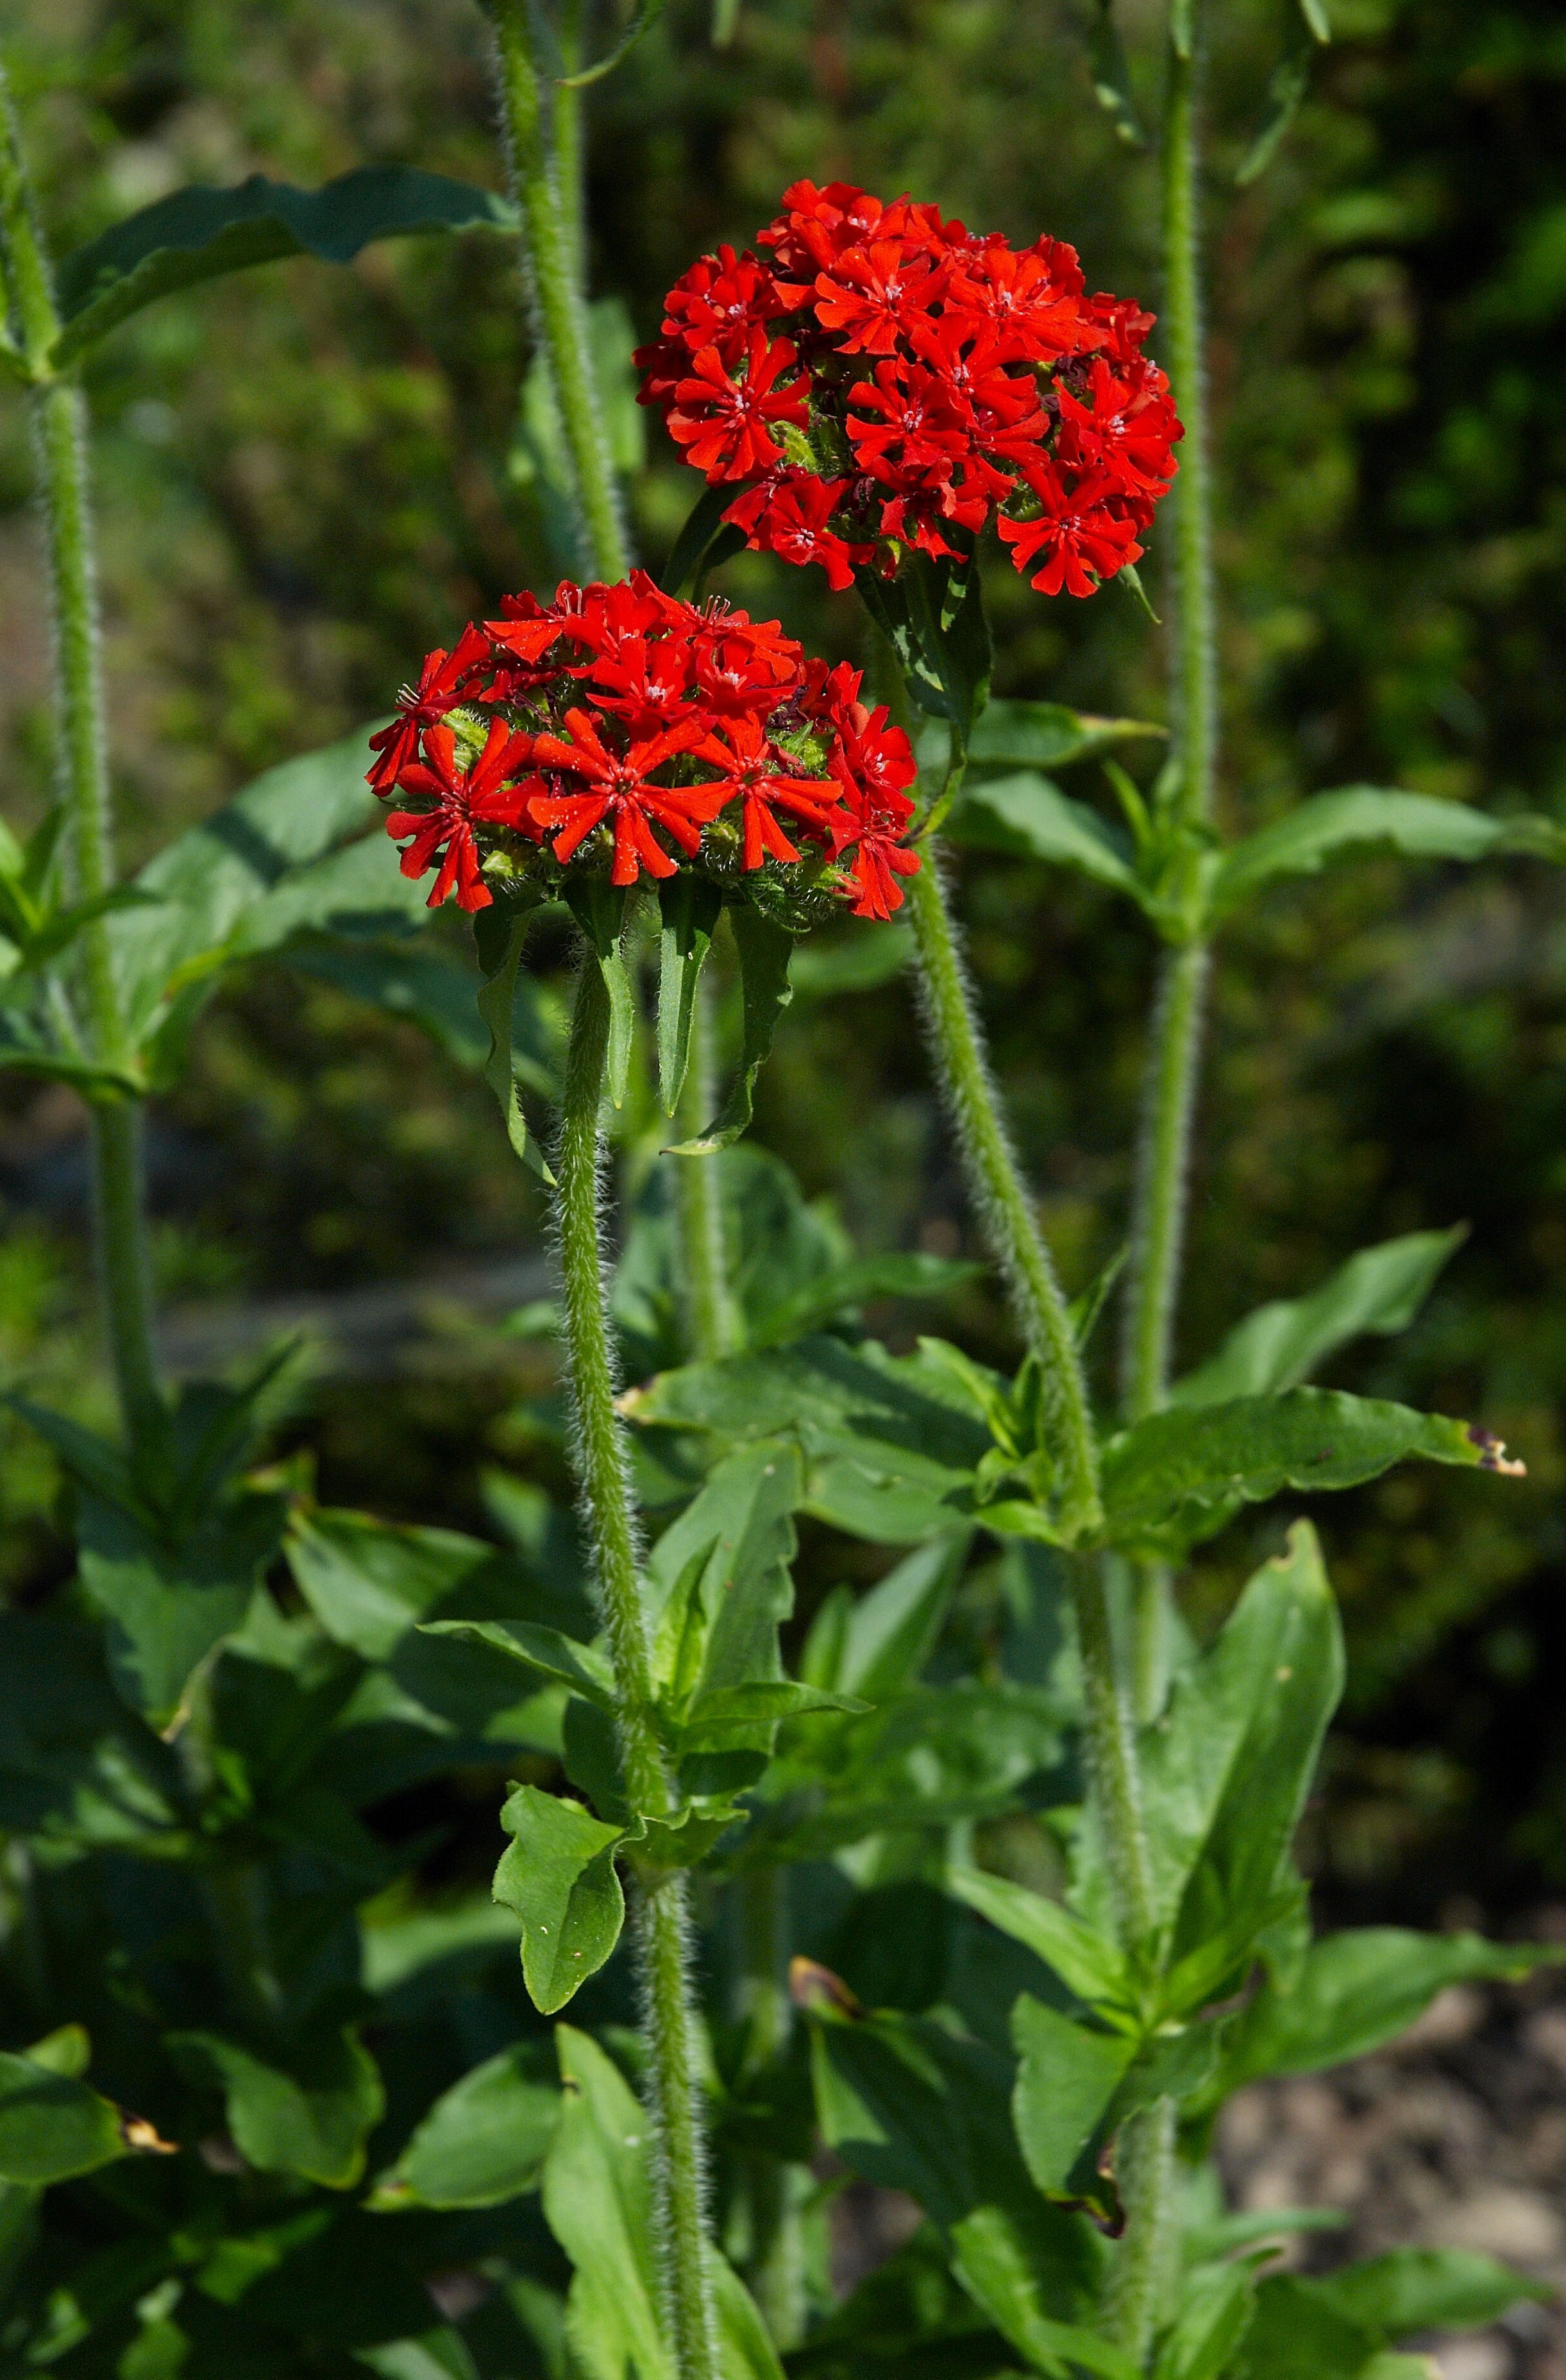 https://upload.wikimedia.org/wikipedia/commons/4/4b/Lychnis_chalcedonica_B.jpg